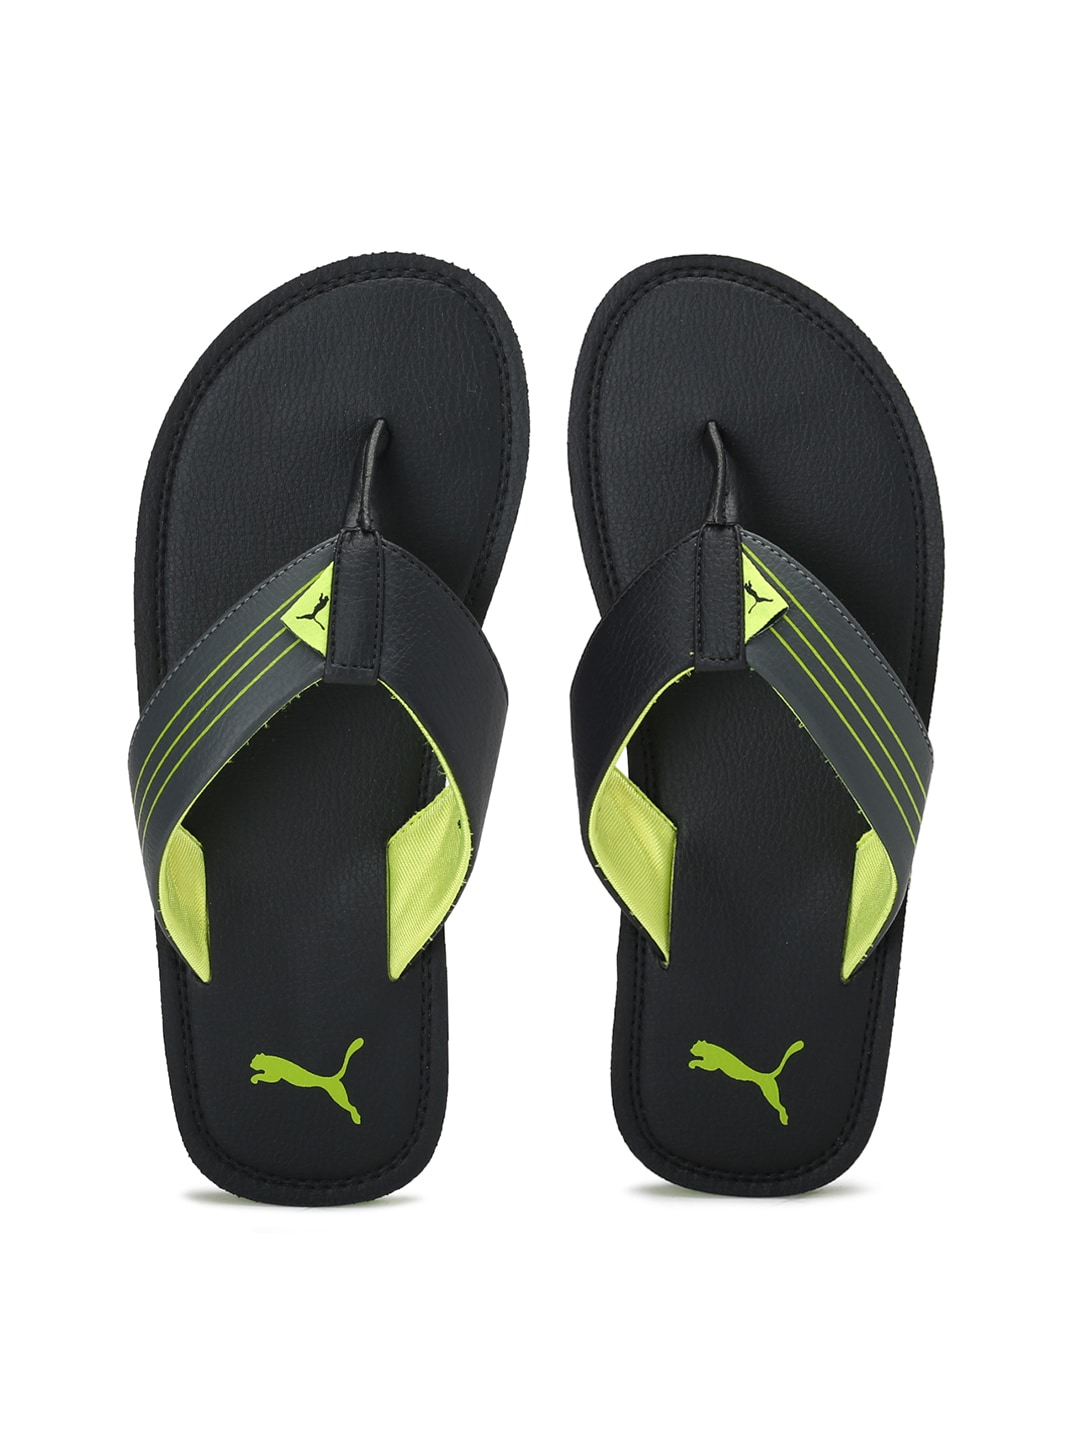 f5d10f9411b4e Puma Men Casual Black Flip Flop - Buy Puma Men Casual Black Flip Flop  online in India